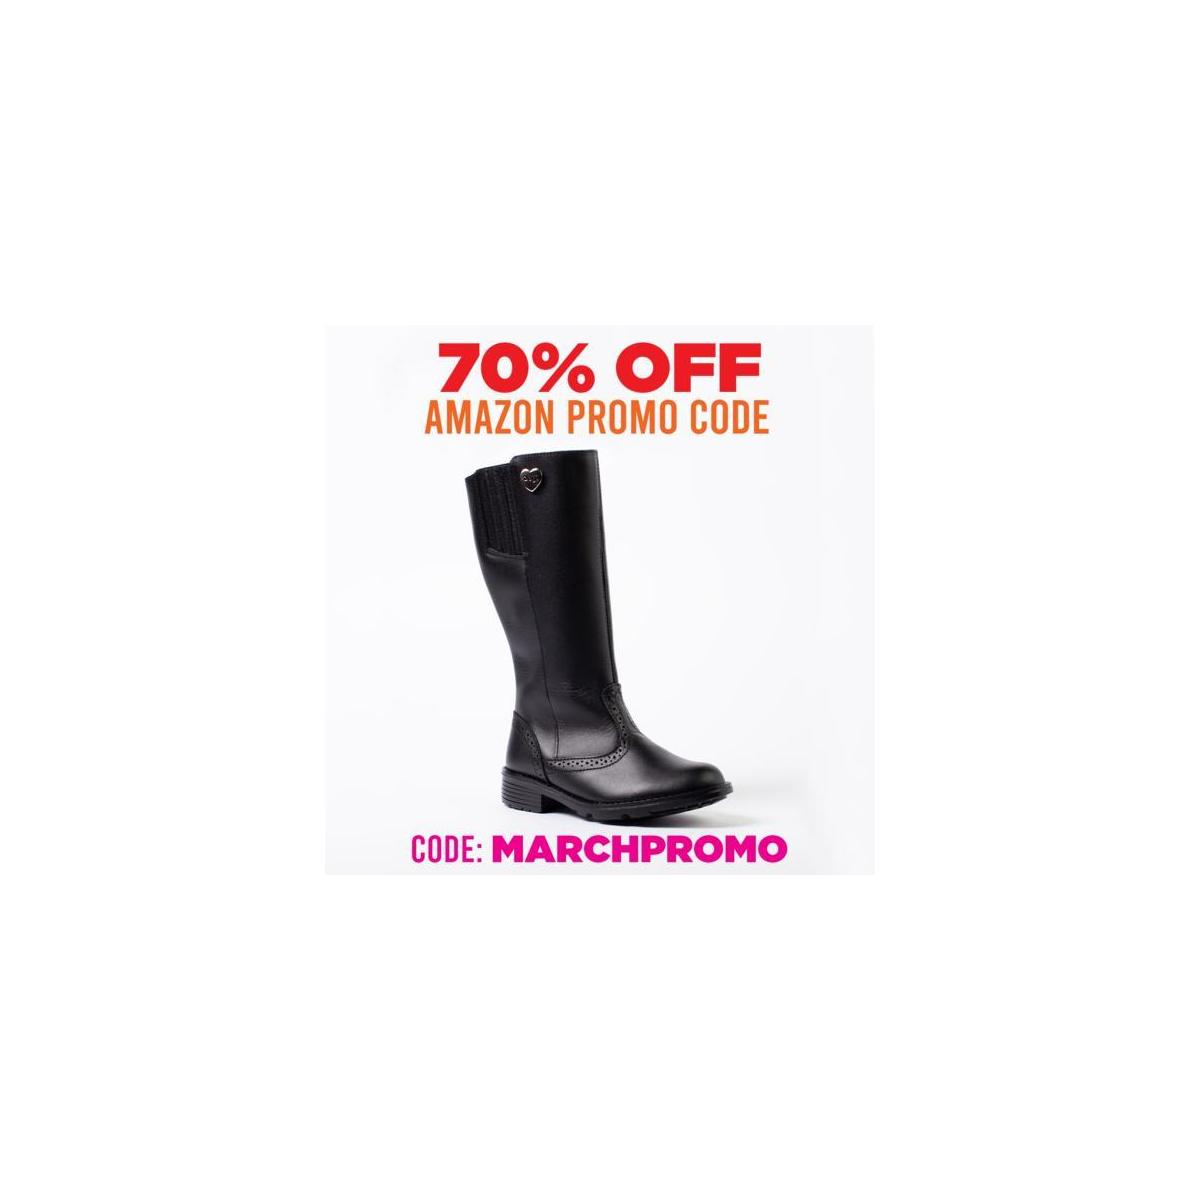 DOGI Little Girl's Knee High Riding Boots - Full Grain Premium Leather Boot with Perforated Details, Elastic Calf Adjustment and Metallic Logo Heart Button - Campera